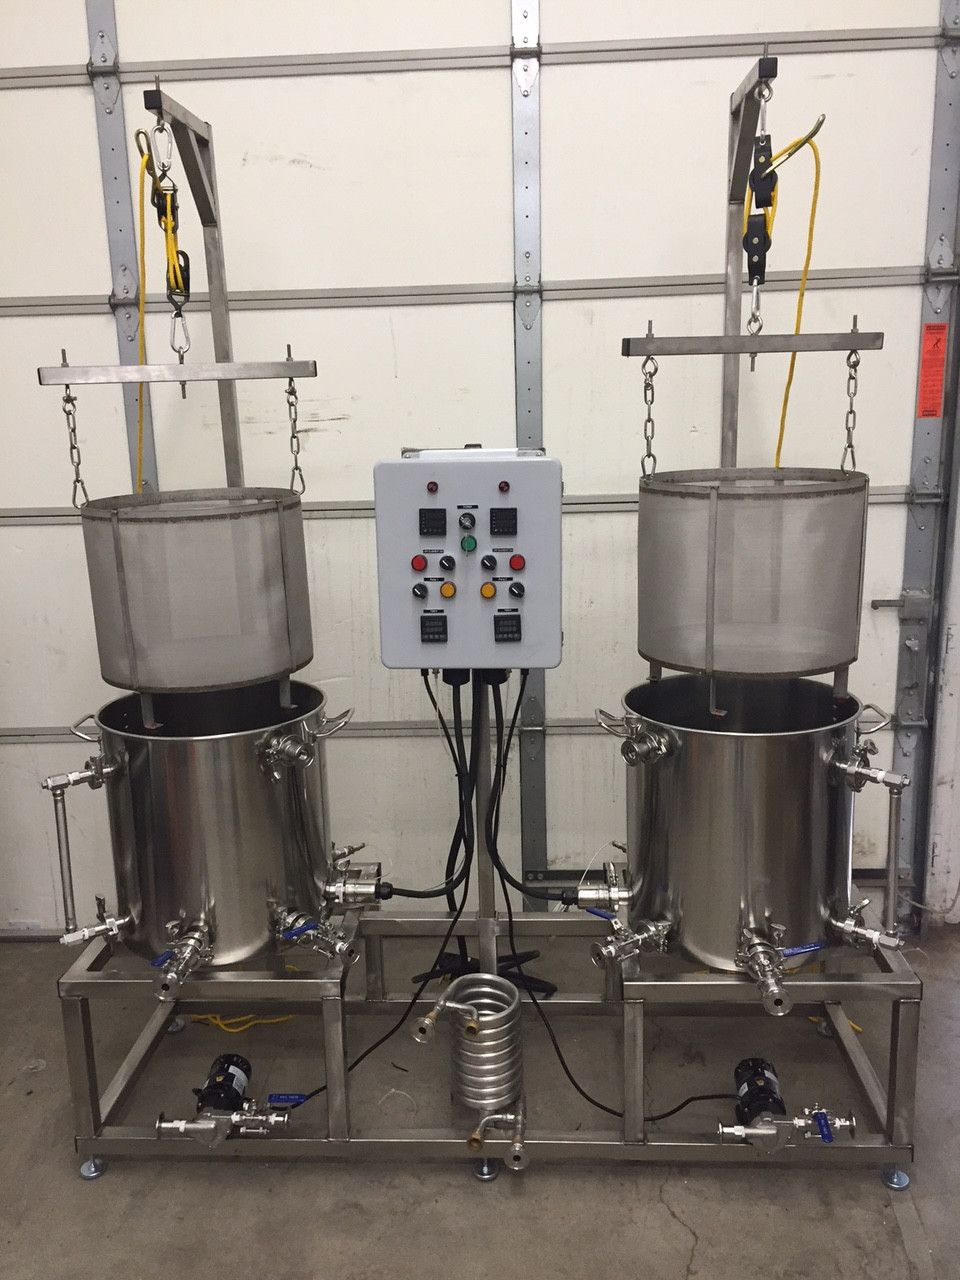 Nano Brewer Dual Professional Brewing System 40 Gallon Version Wiring Wizards Rehoboth Beach Colorado